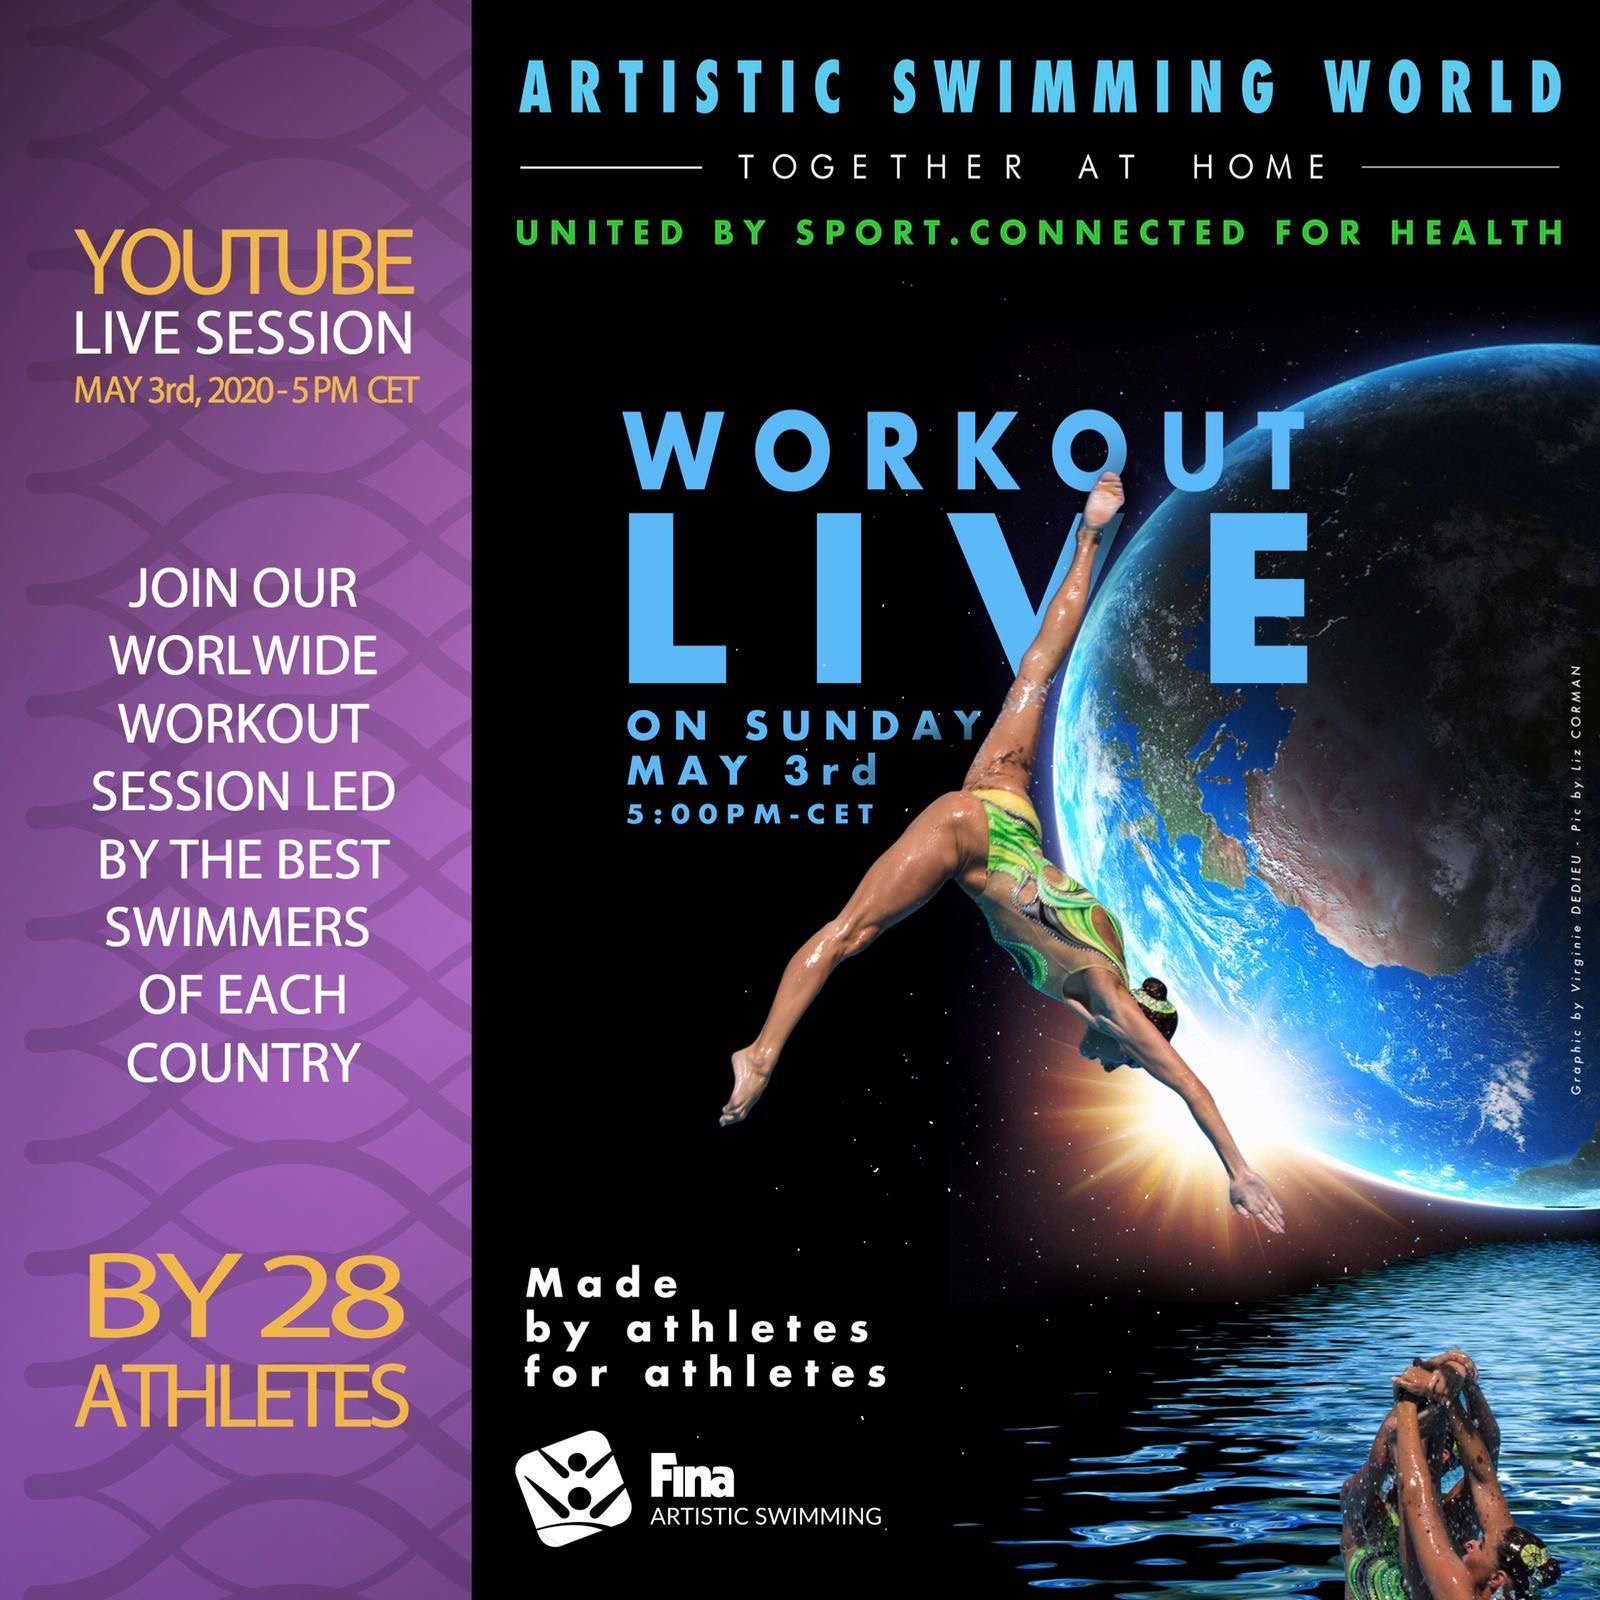 Worldwide Live Workout